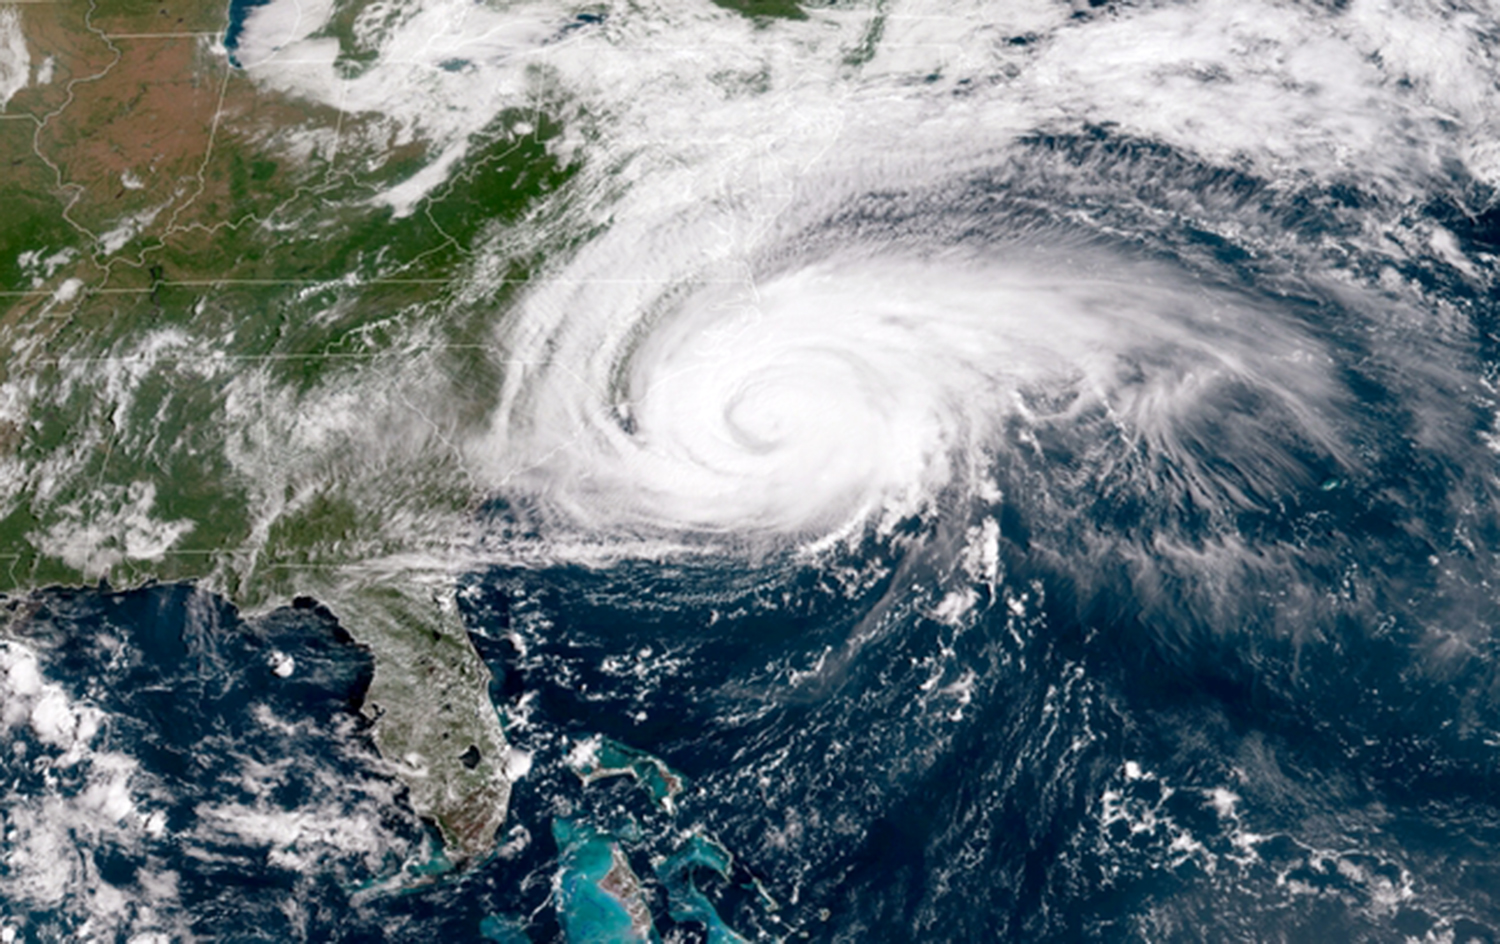 IN SPACE - SEPTEMBER 13:  In this NOAA satellite handout image captured at 15:02 UTC, shows Hurricane Florence as it travels west in the Atlantic Ocean off the coast of the U.S. on September 13, 2018. Coastal cities in North Carolina, South Carolina and Virginia are under evacuation orders as the Category 2 hurricane approaches the United States. (Photo by NOAA via Getty Images)